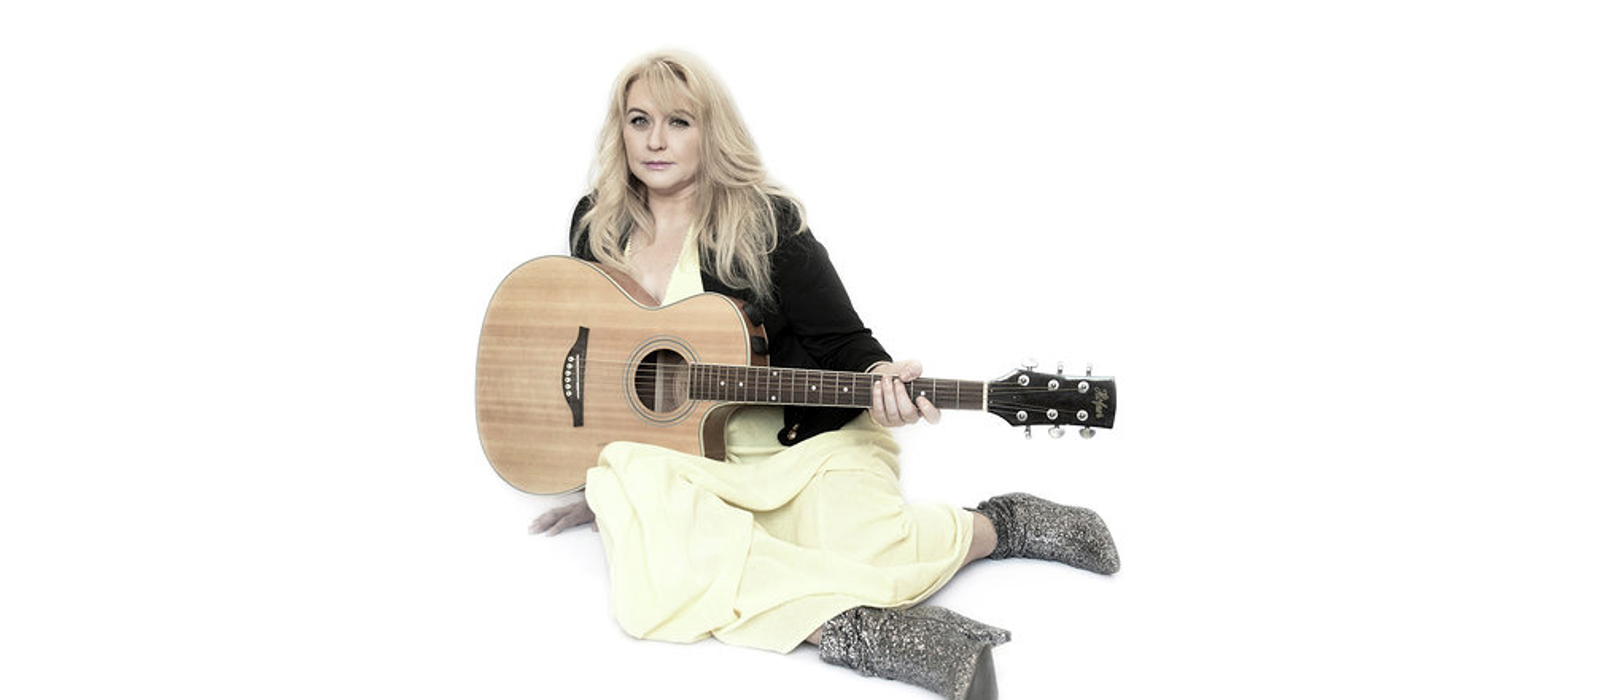 Cathy Beech releases Christmas Single in aid of Ponthafren